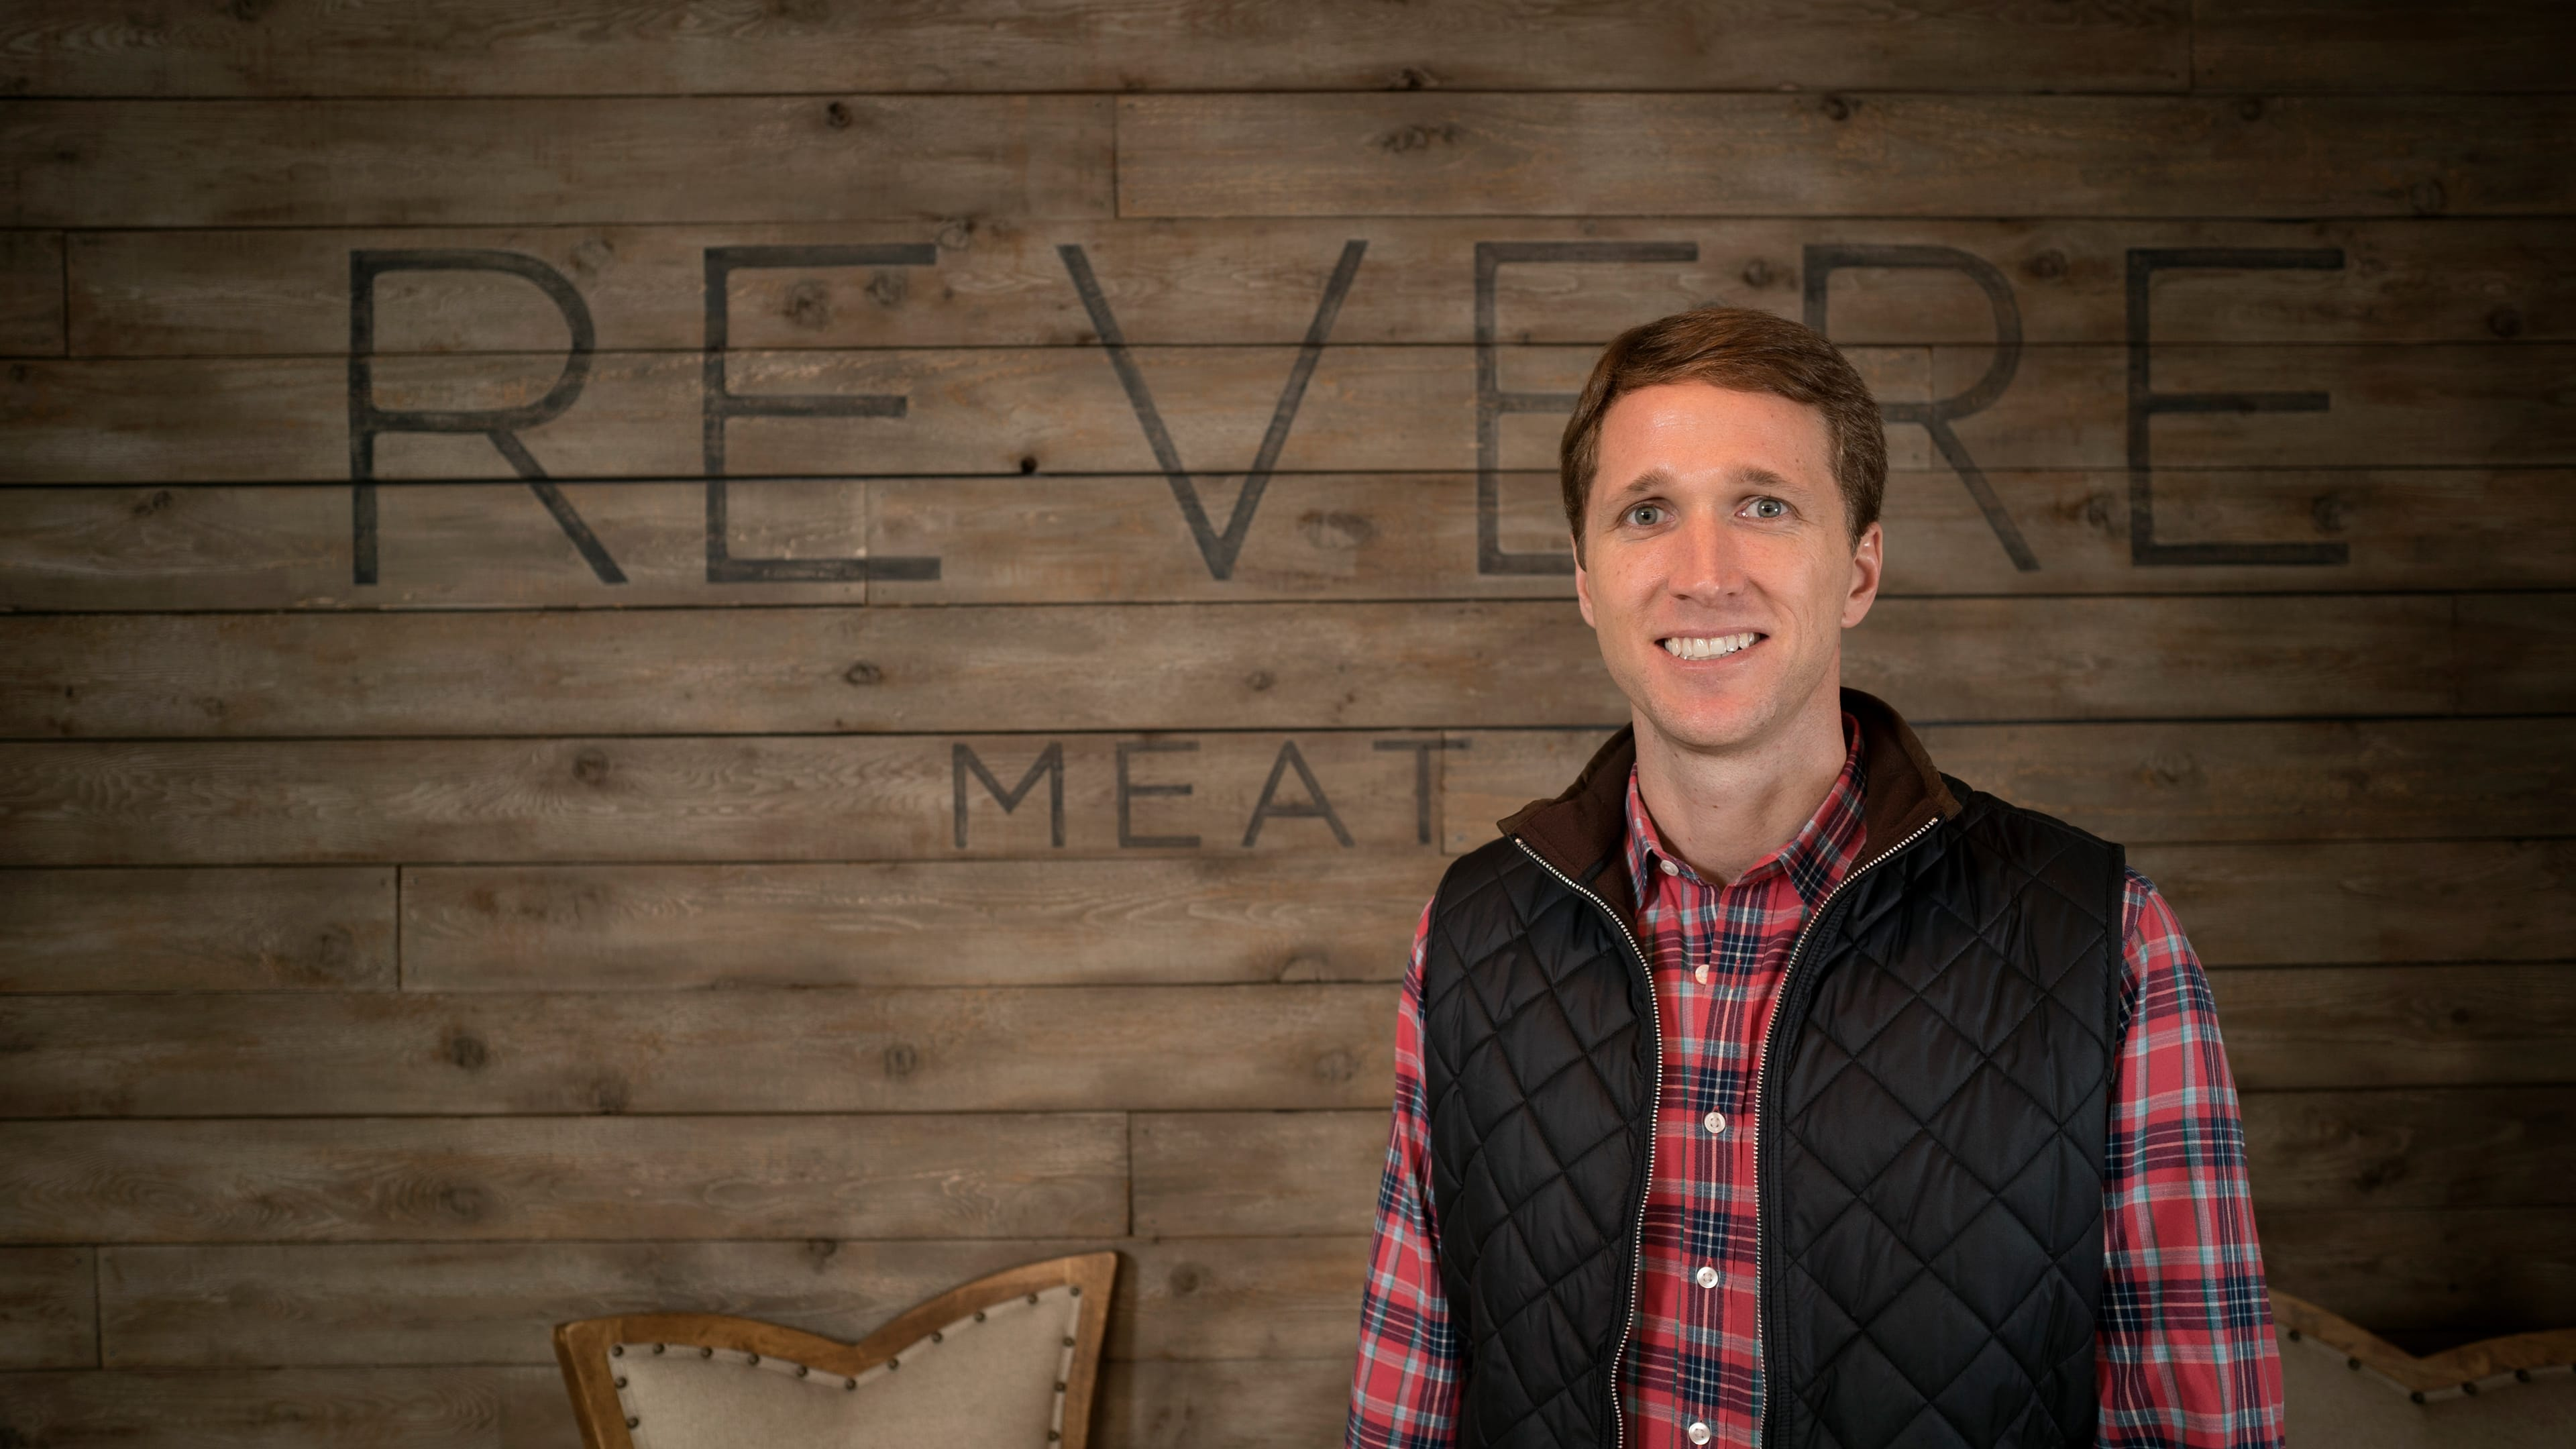 Revere Meat Co